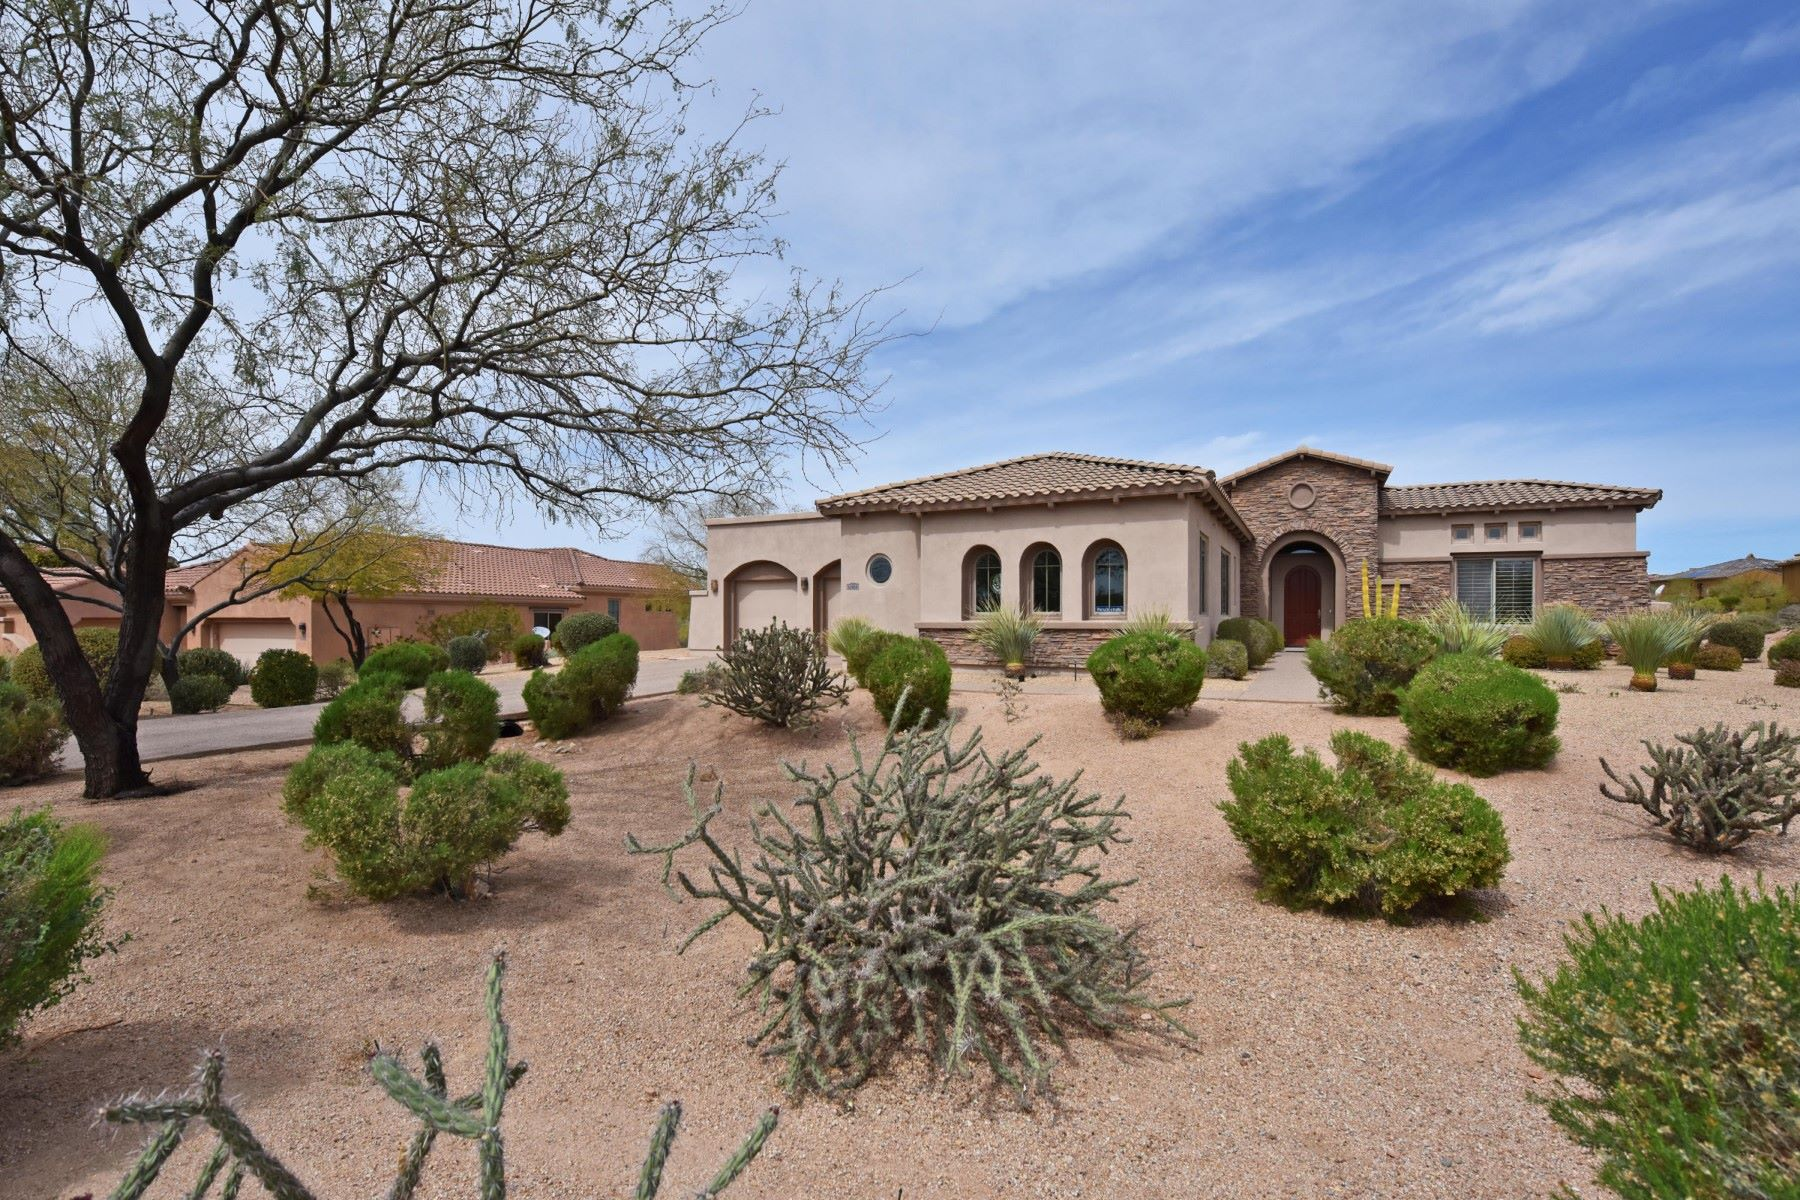 Частный односемейный дом для того Продажа на Beautiful Toll Brothers Home in the Gated Area of Treviso 10934 E La Verna Way E, Scottsdale, Аризона, 85262 Соединенные Штаты